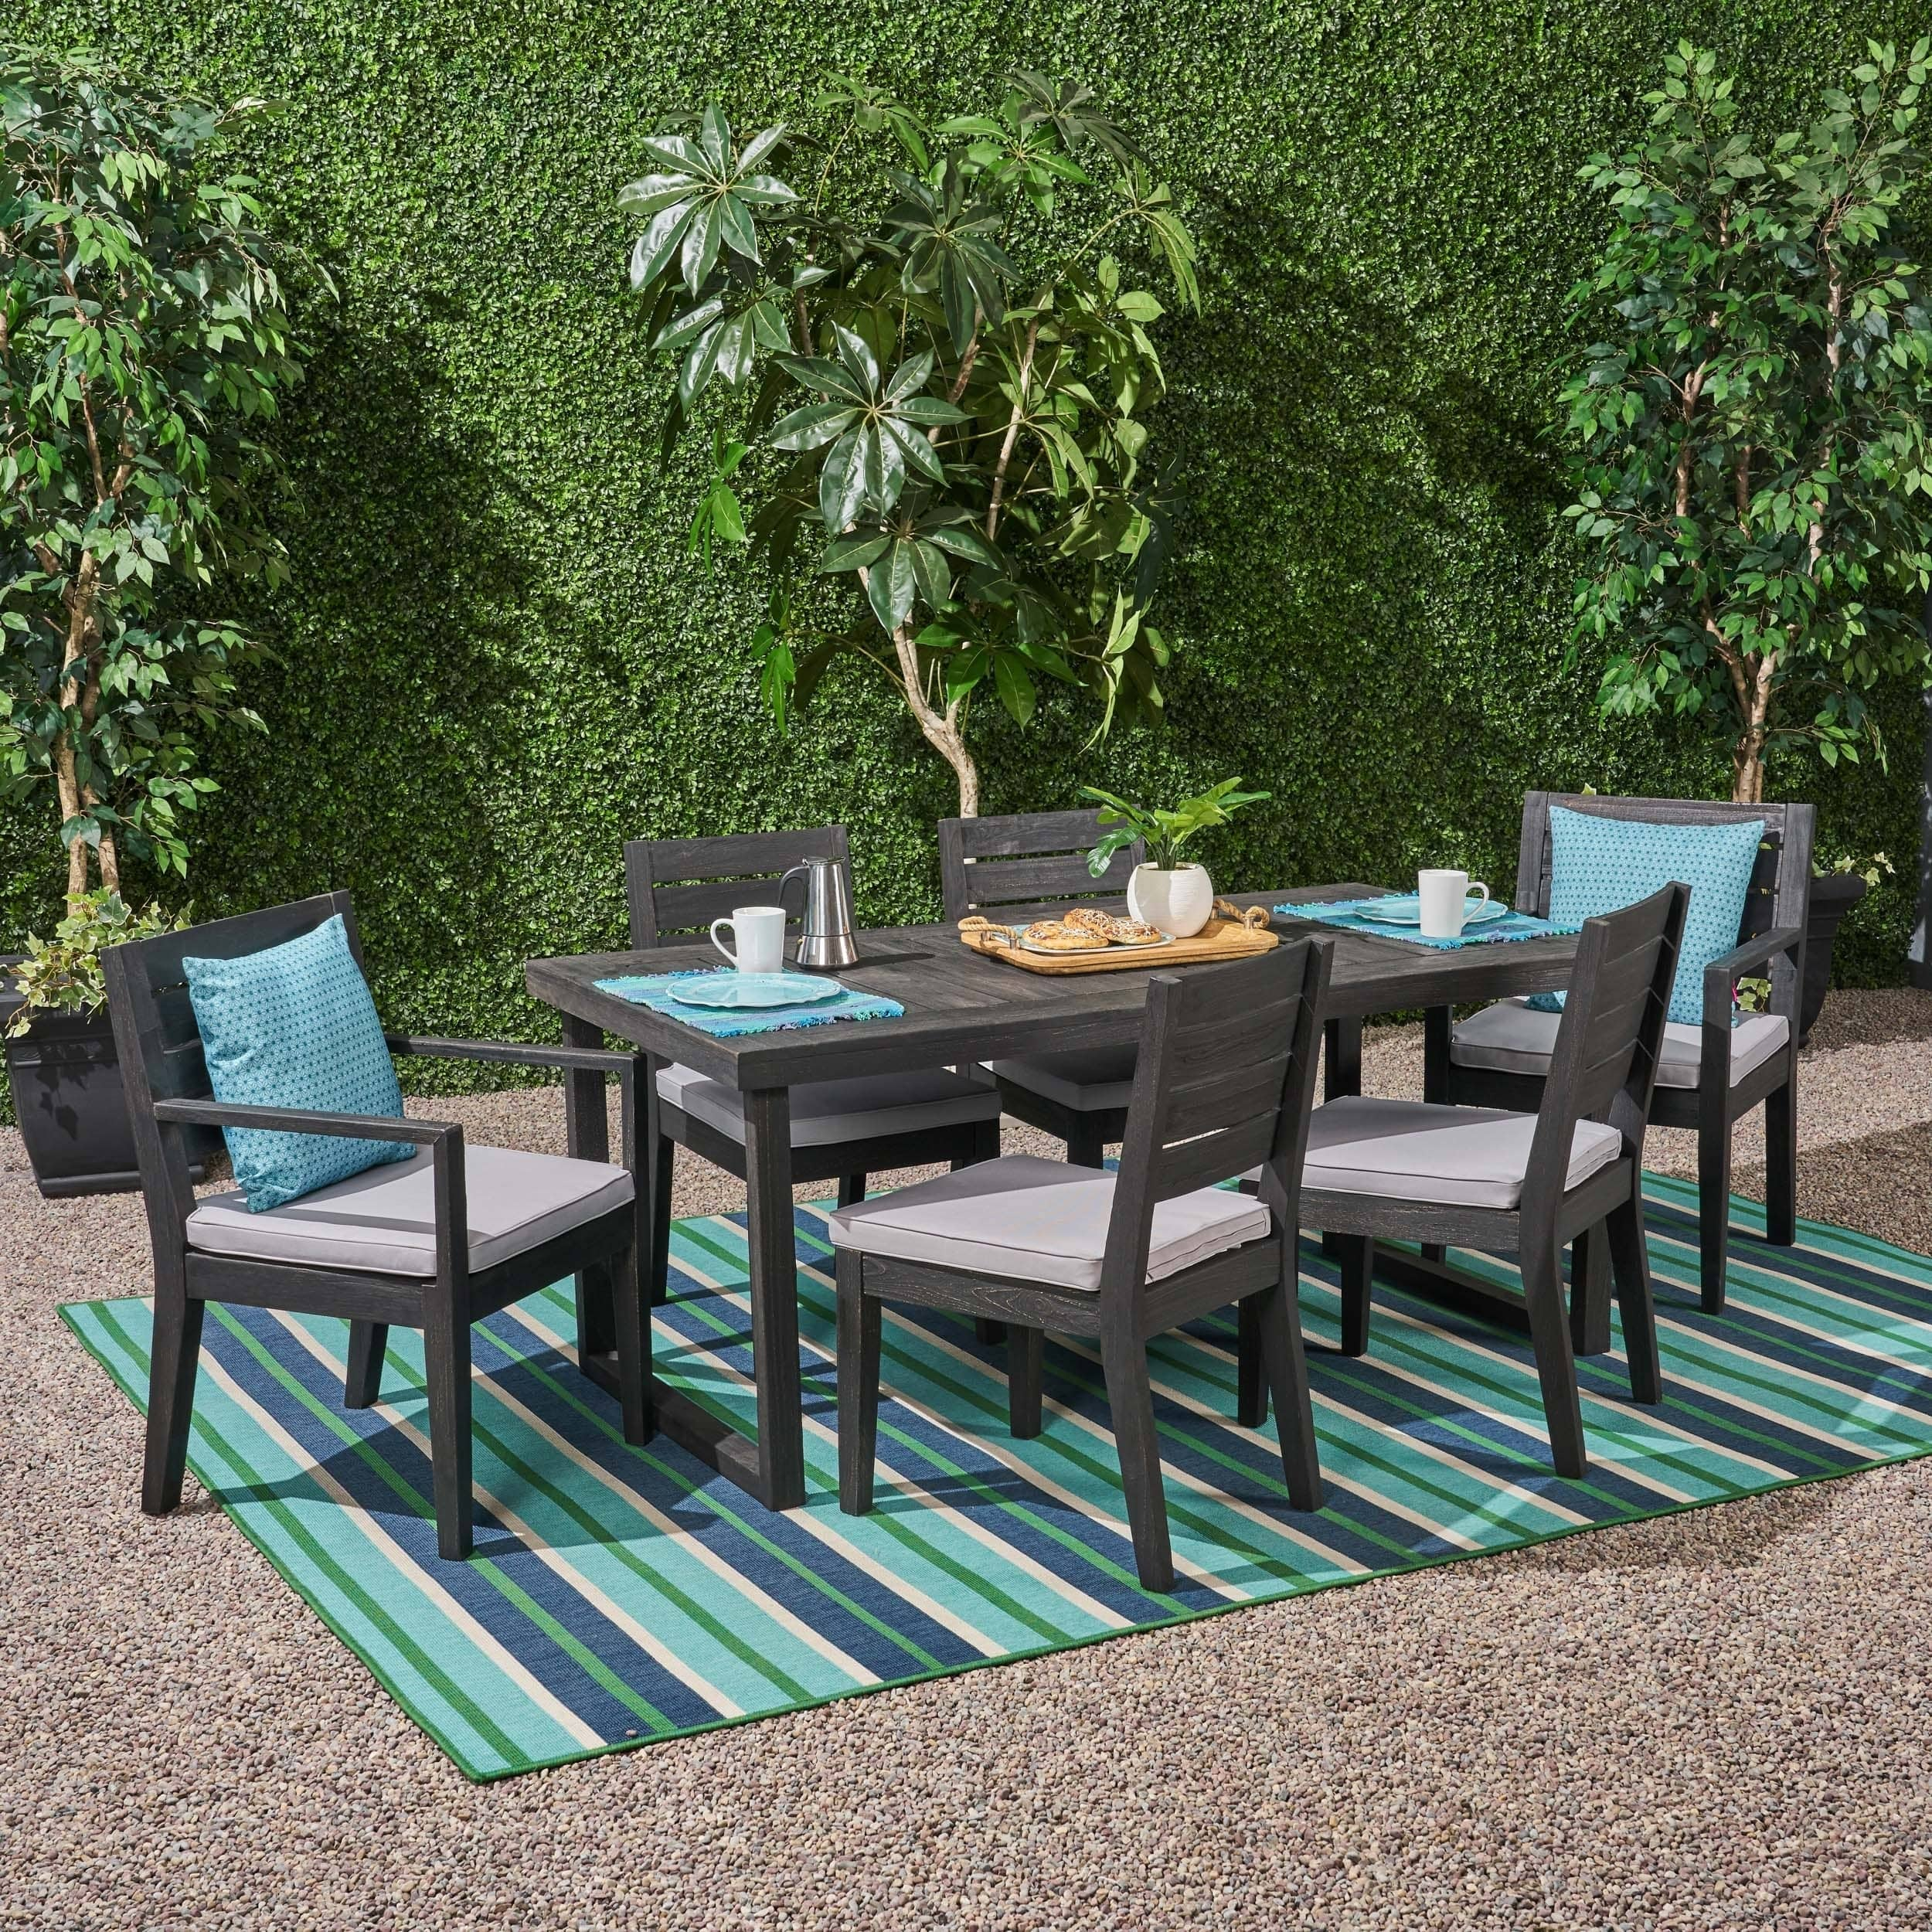 eb95c7b524 Christopher Knight Home Nestor Outdoor 6-Seater Acacia Wood Dining Set by -  Walmart.com